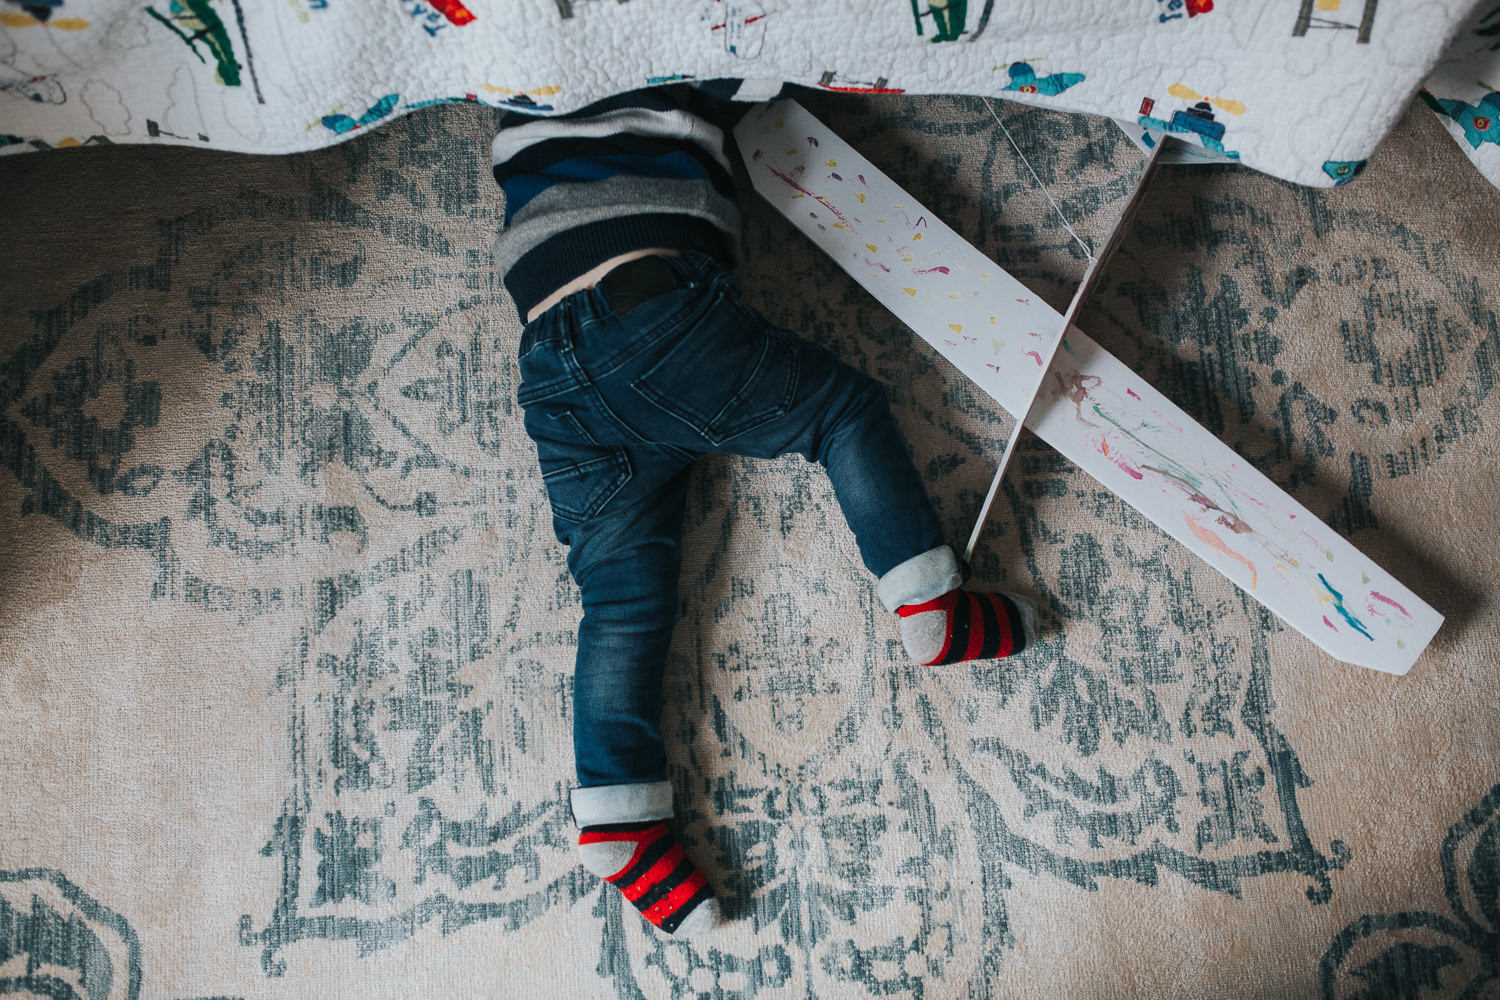 3 year old toddler boy with head under bed looking for toy - Newmarket lifestyle photography